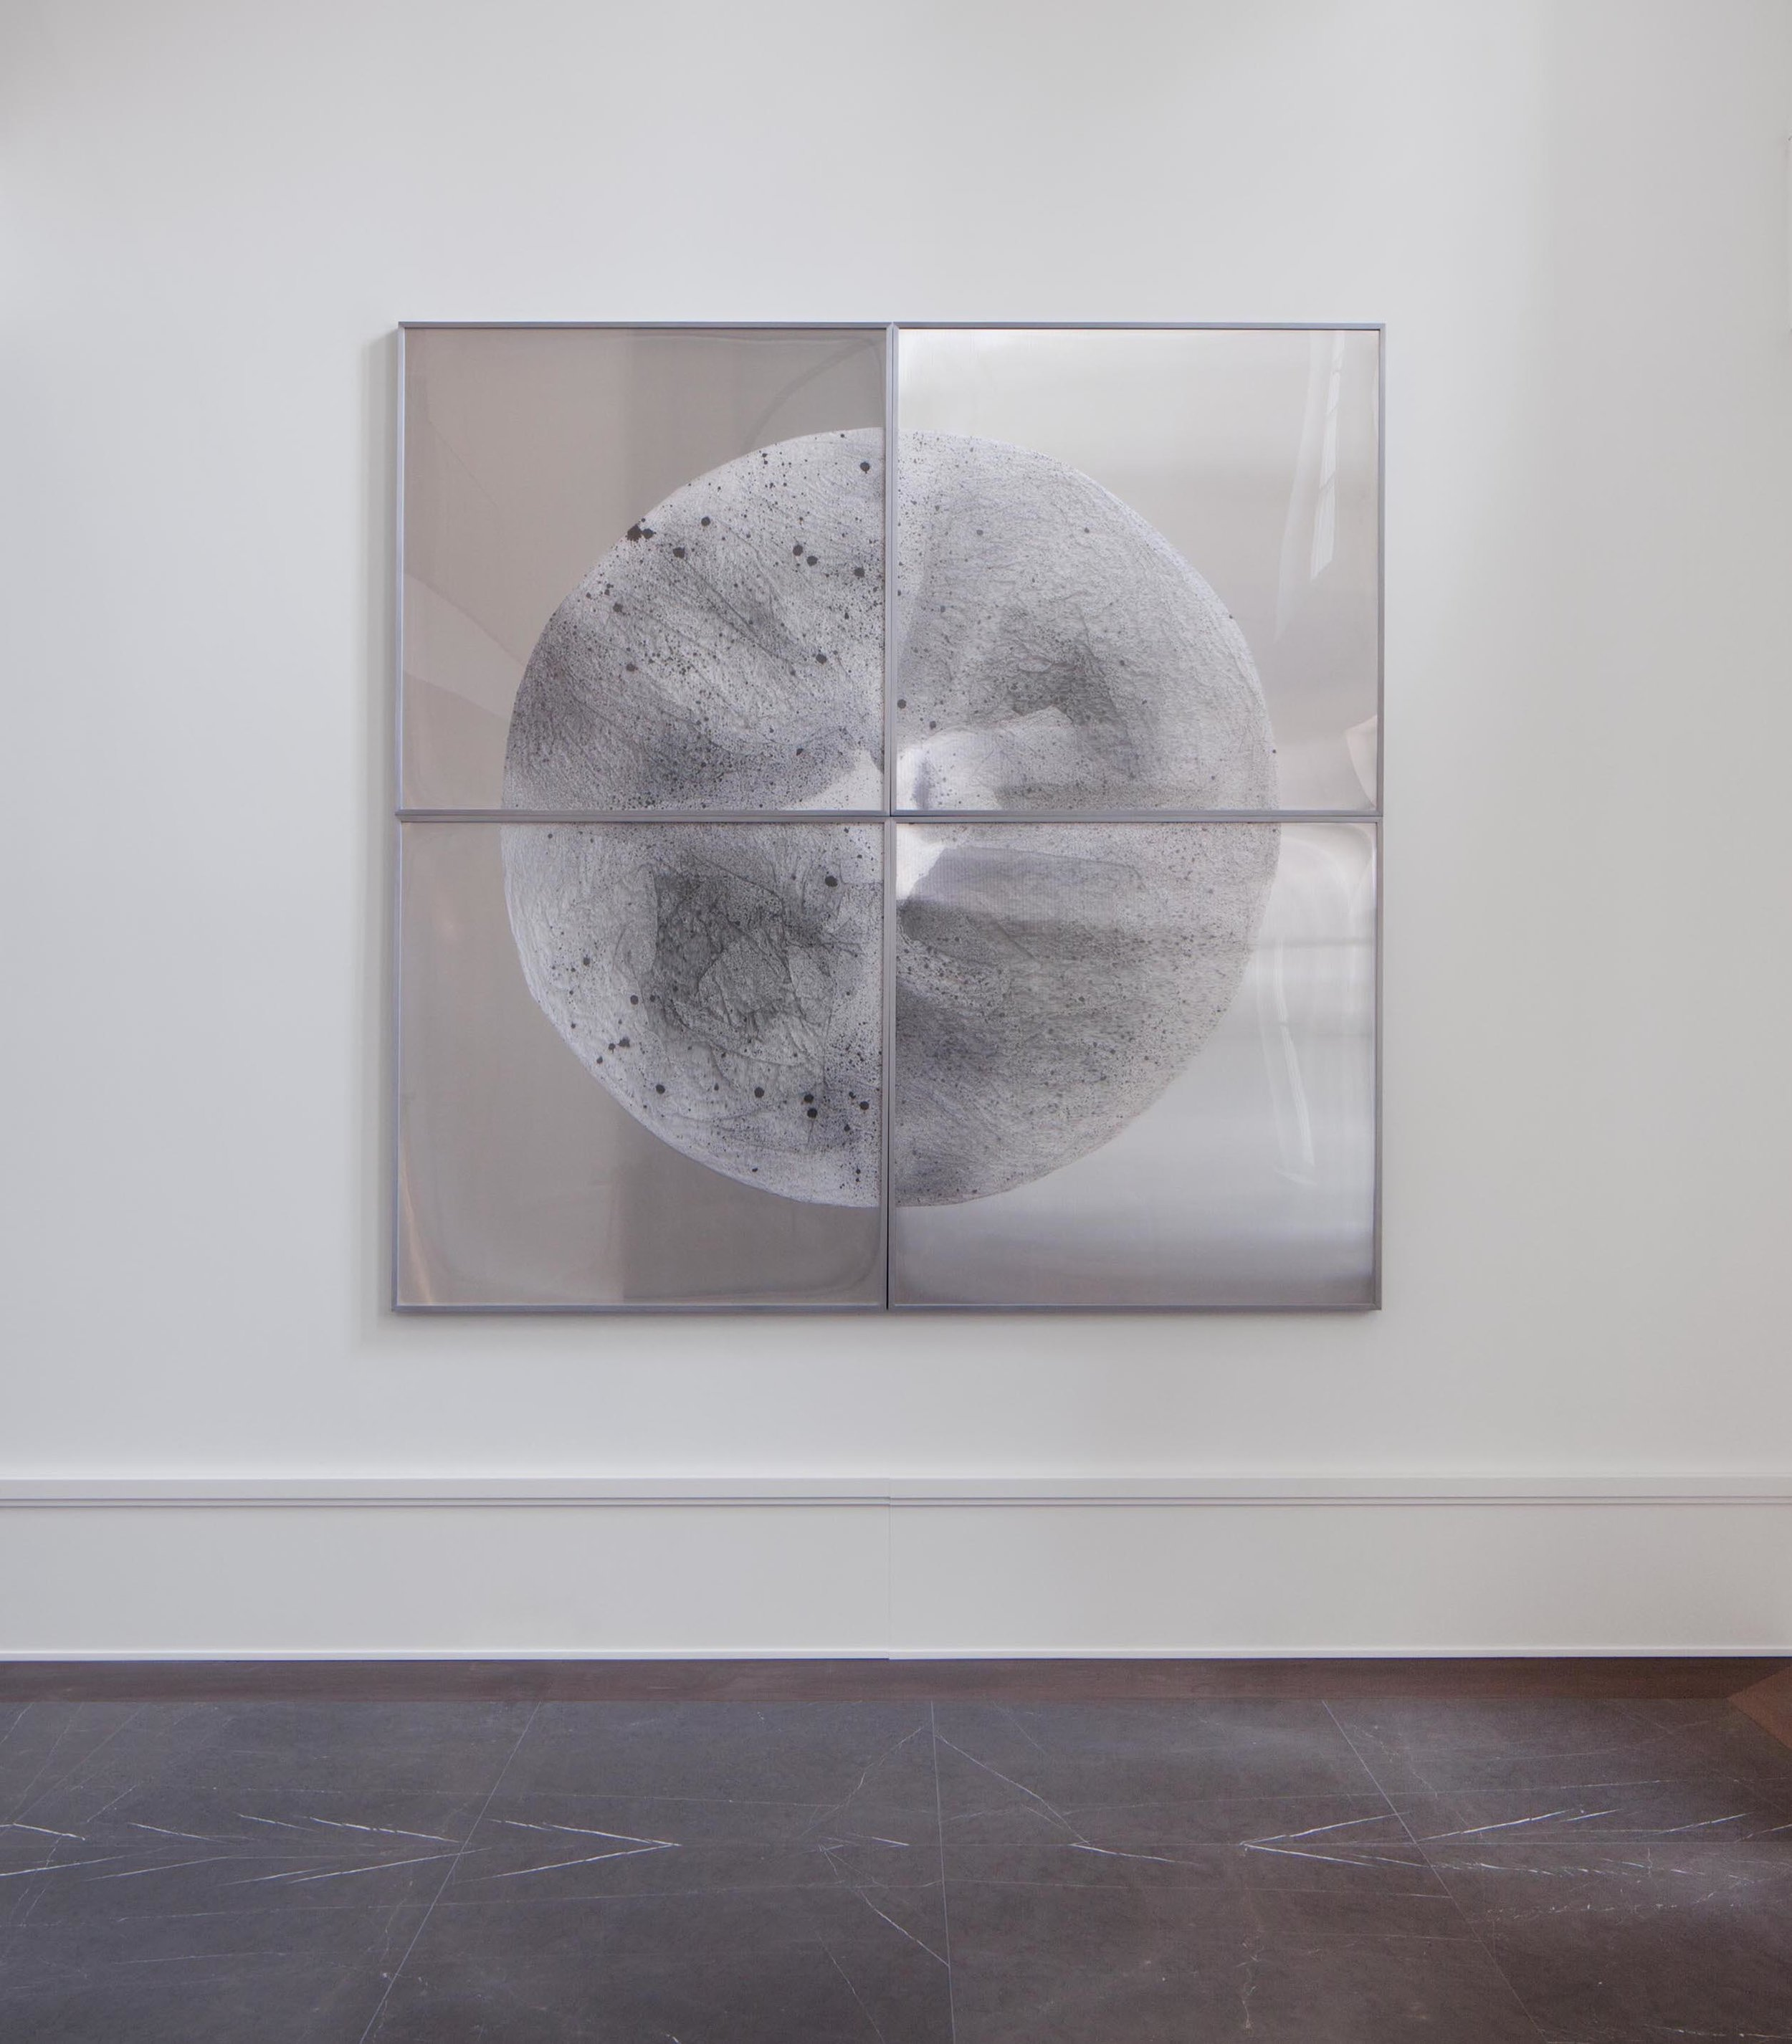 Verklärte Nacht (Transfigured Night) / Part IV (Quadriptych),  2018 - Installation view Ink on Xuan paper on mirror beneath linear Plexiglas, aluminium frame 240 x 240 cm (95 x 95 in)